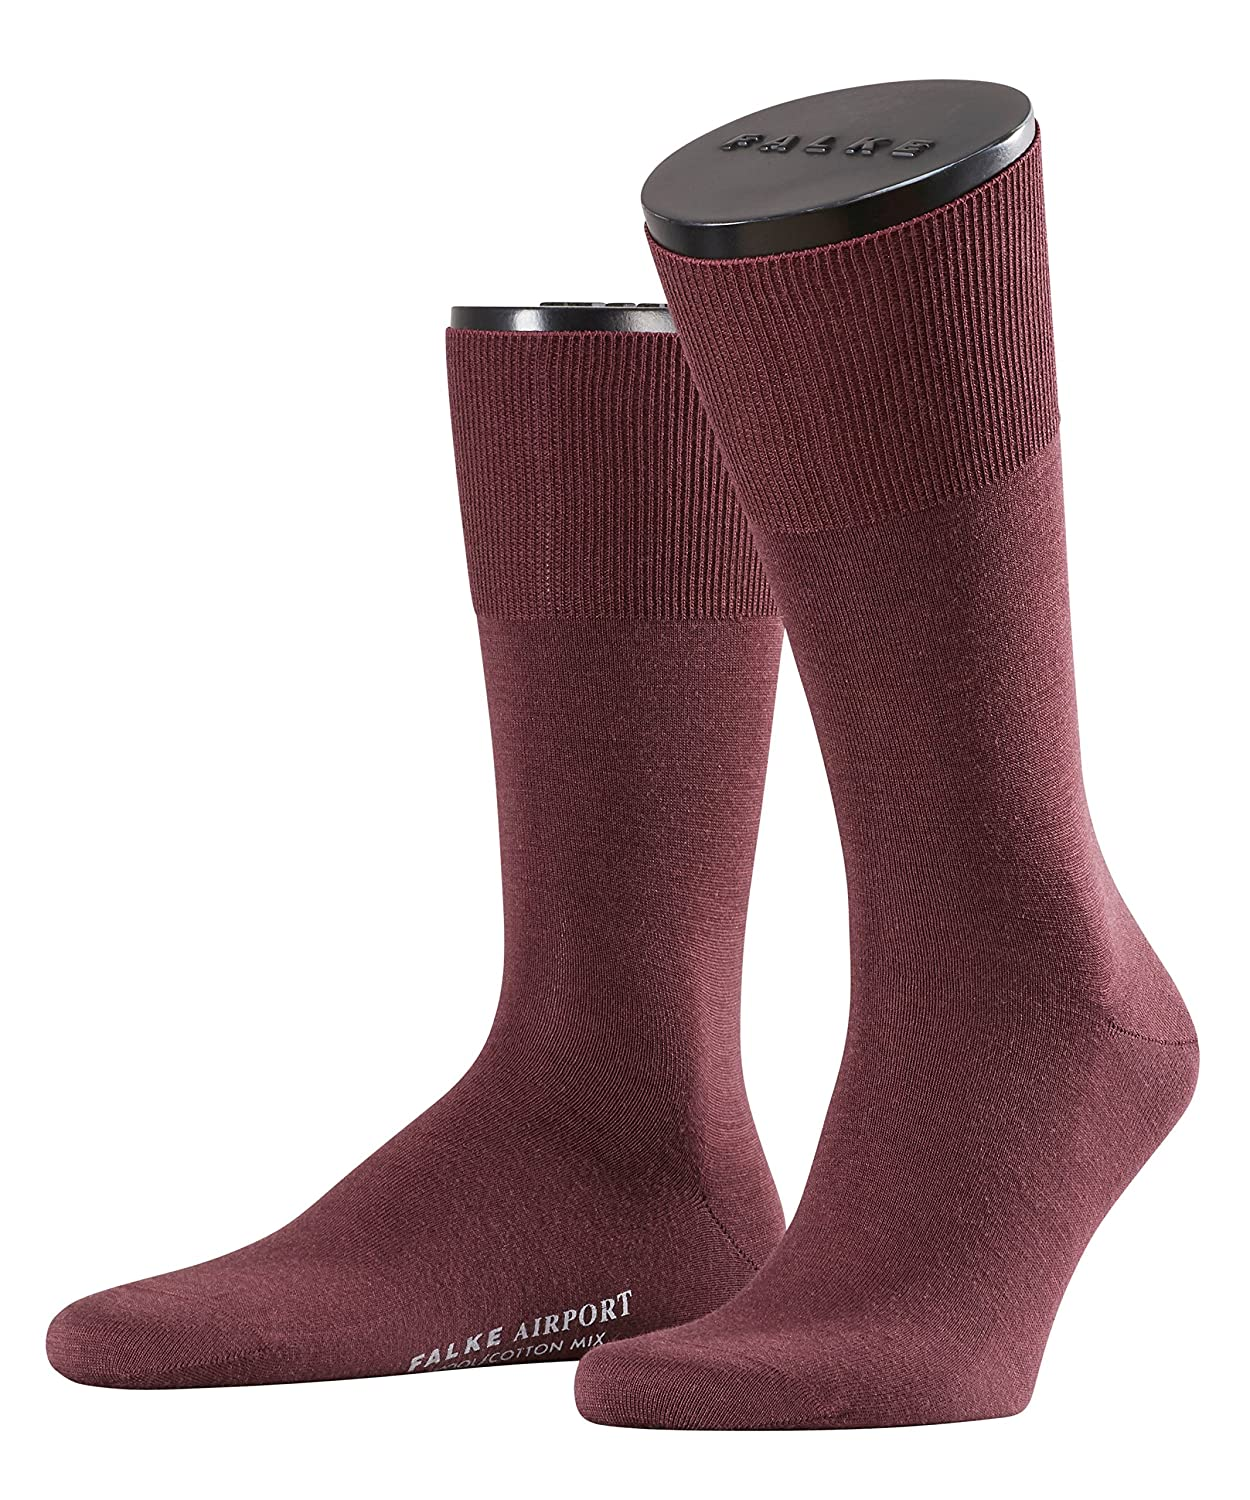 Falke Airport Men's Socks Falke Airport Men's Socks